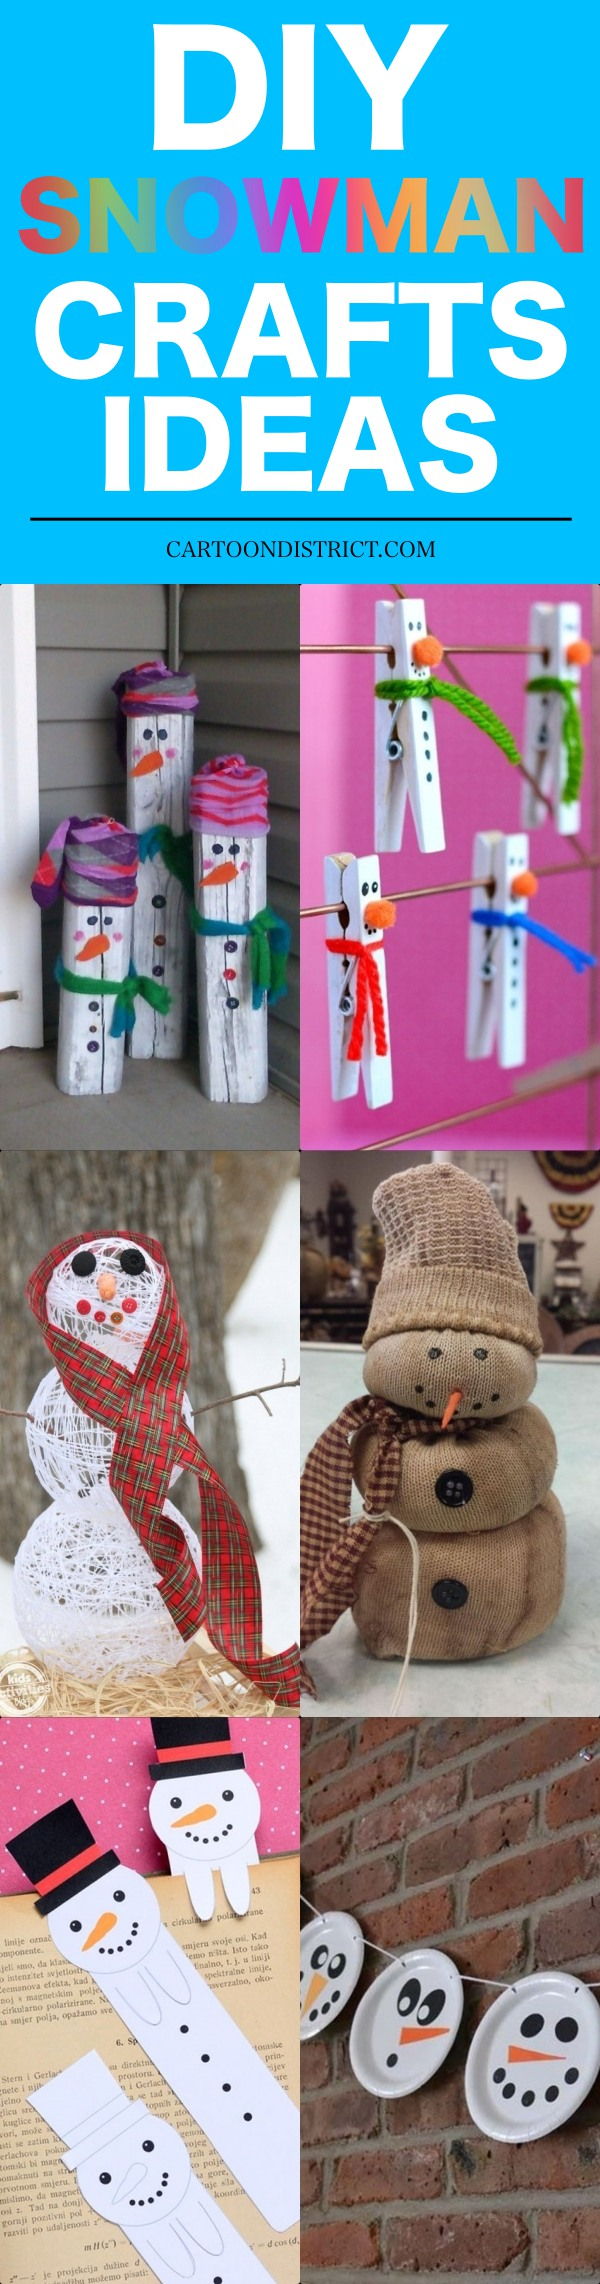 DIY Snowman Crafts Ideas